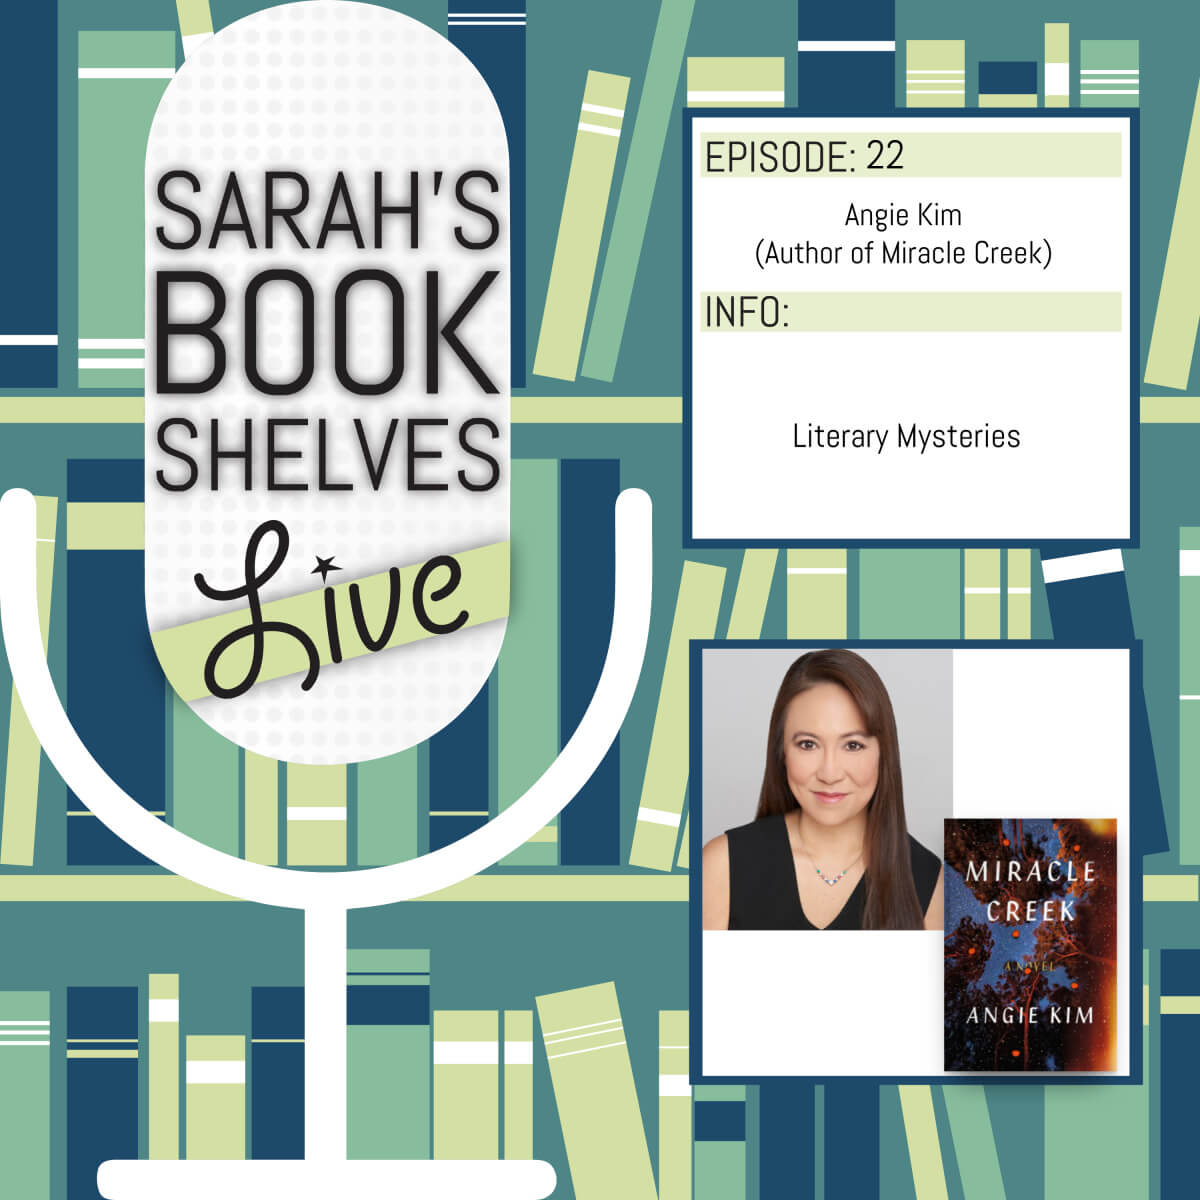 Literary mysteries with angie kim